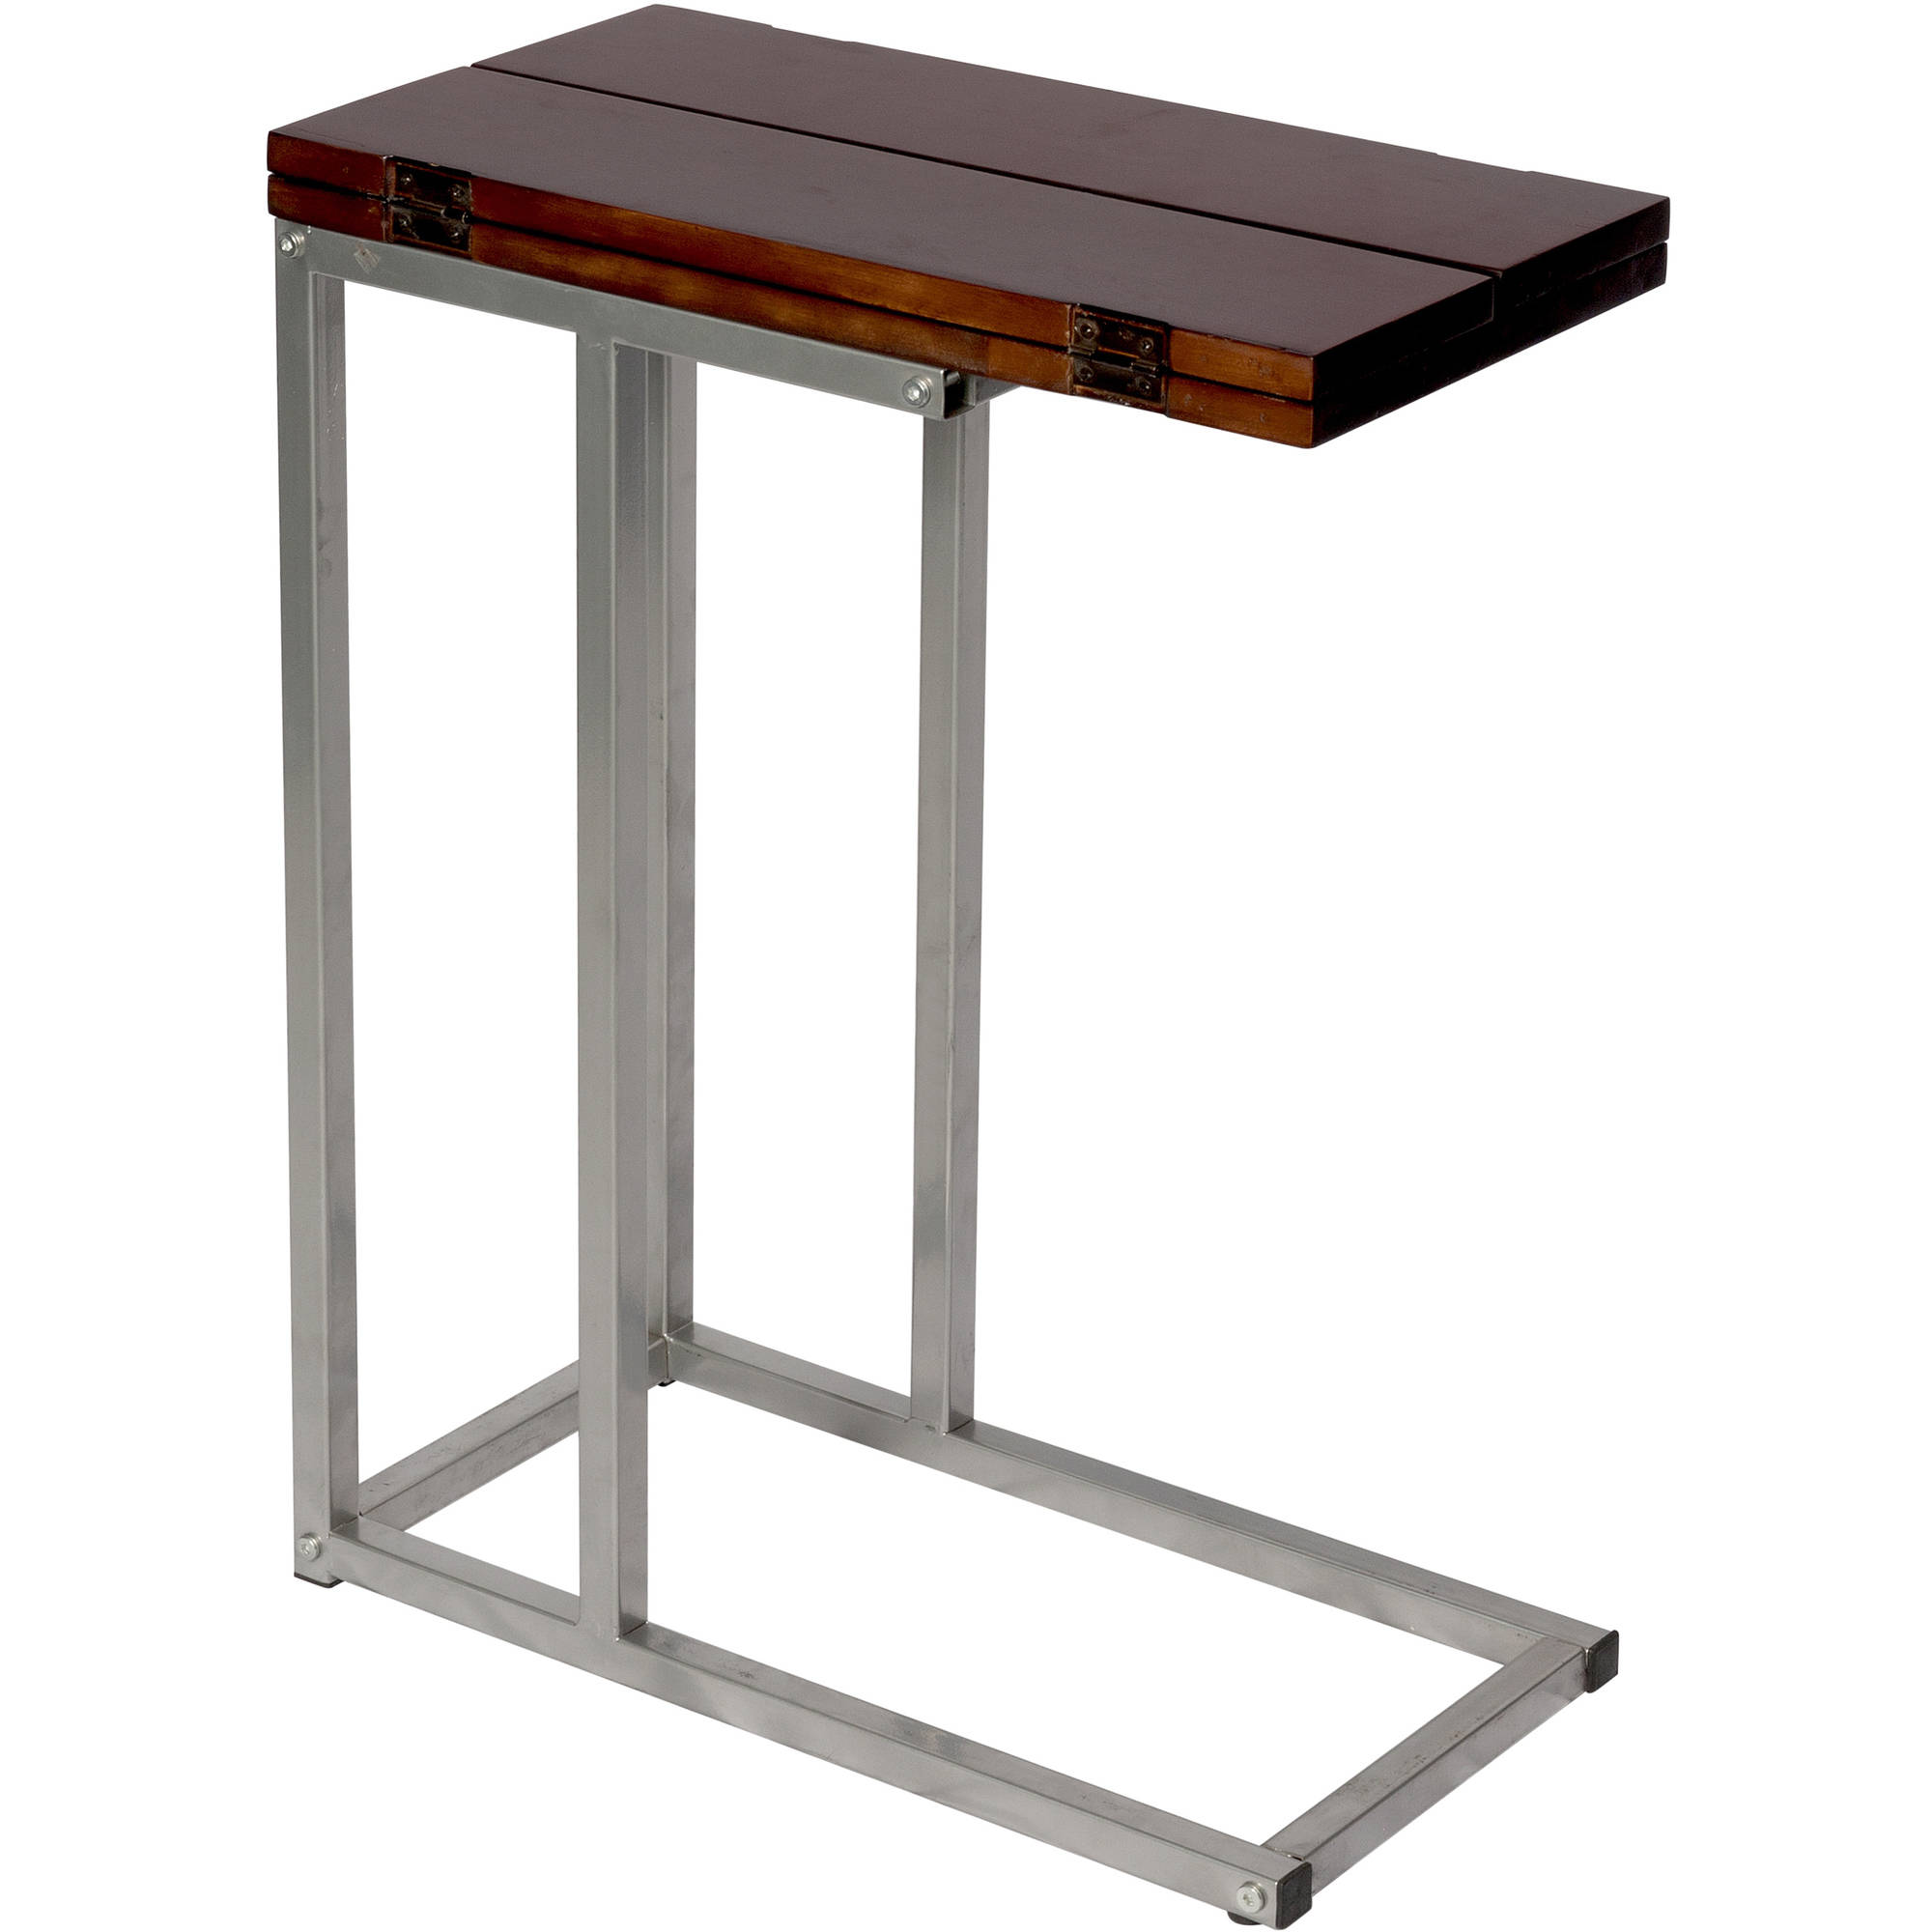 Bay Shore Collection Expandable Modern Side Table  Espresso   Walmart com. Bay Shore Collection Expandable Modern Side Table  Espresso